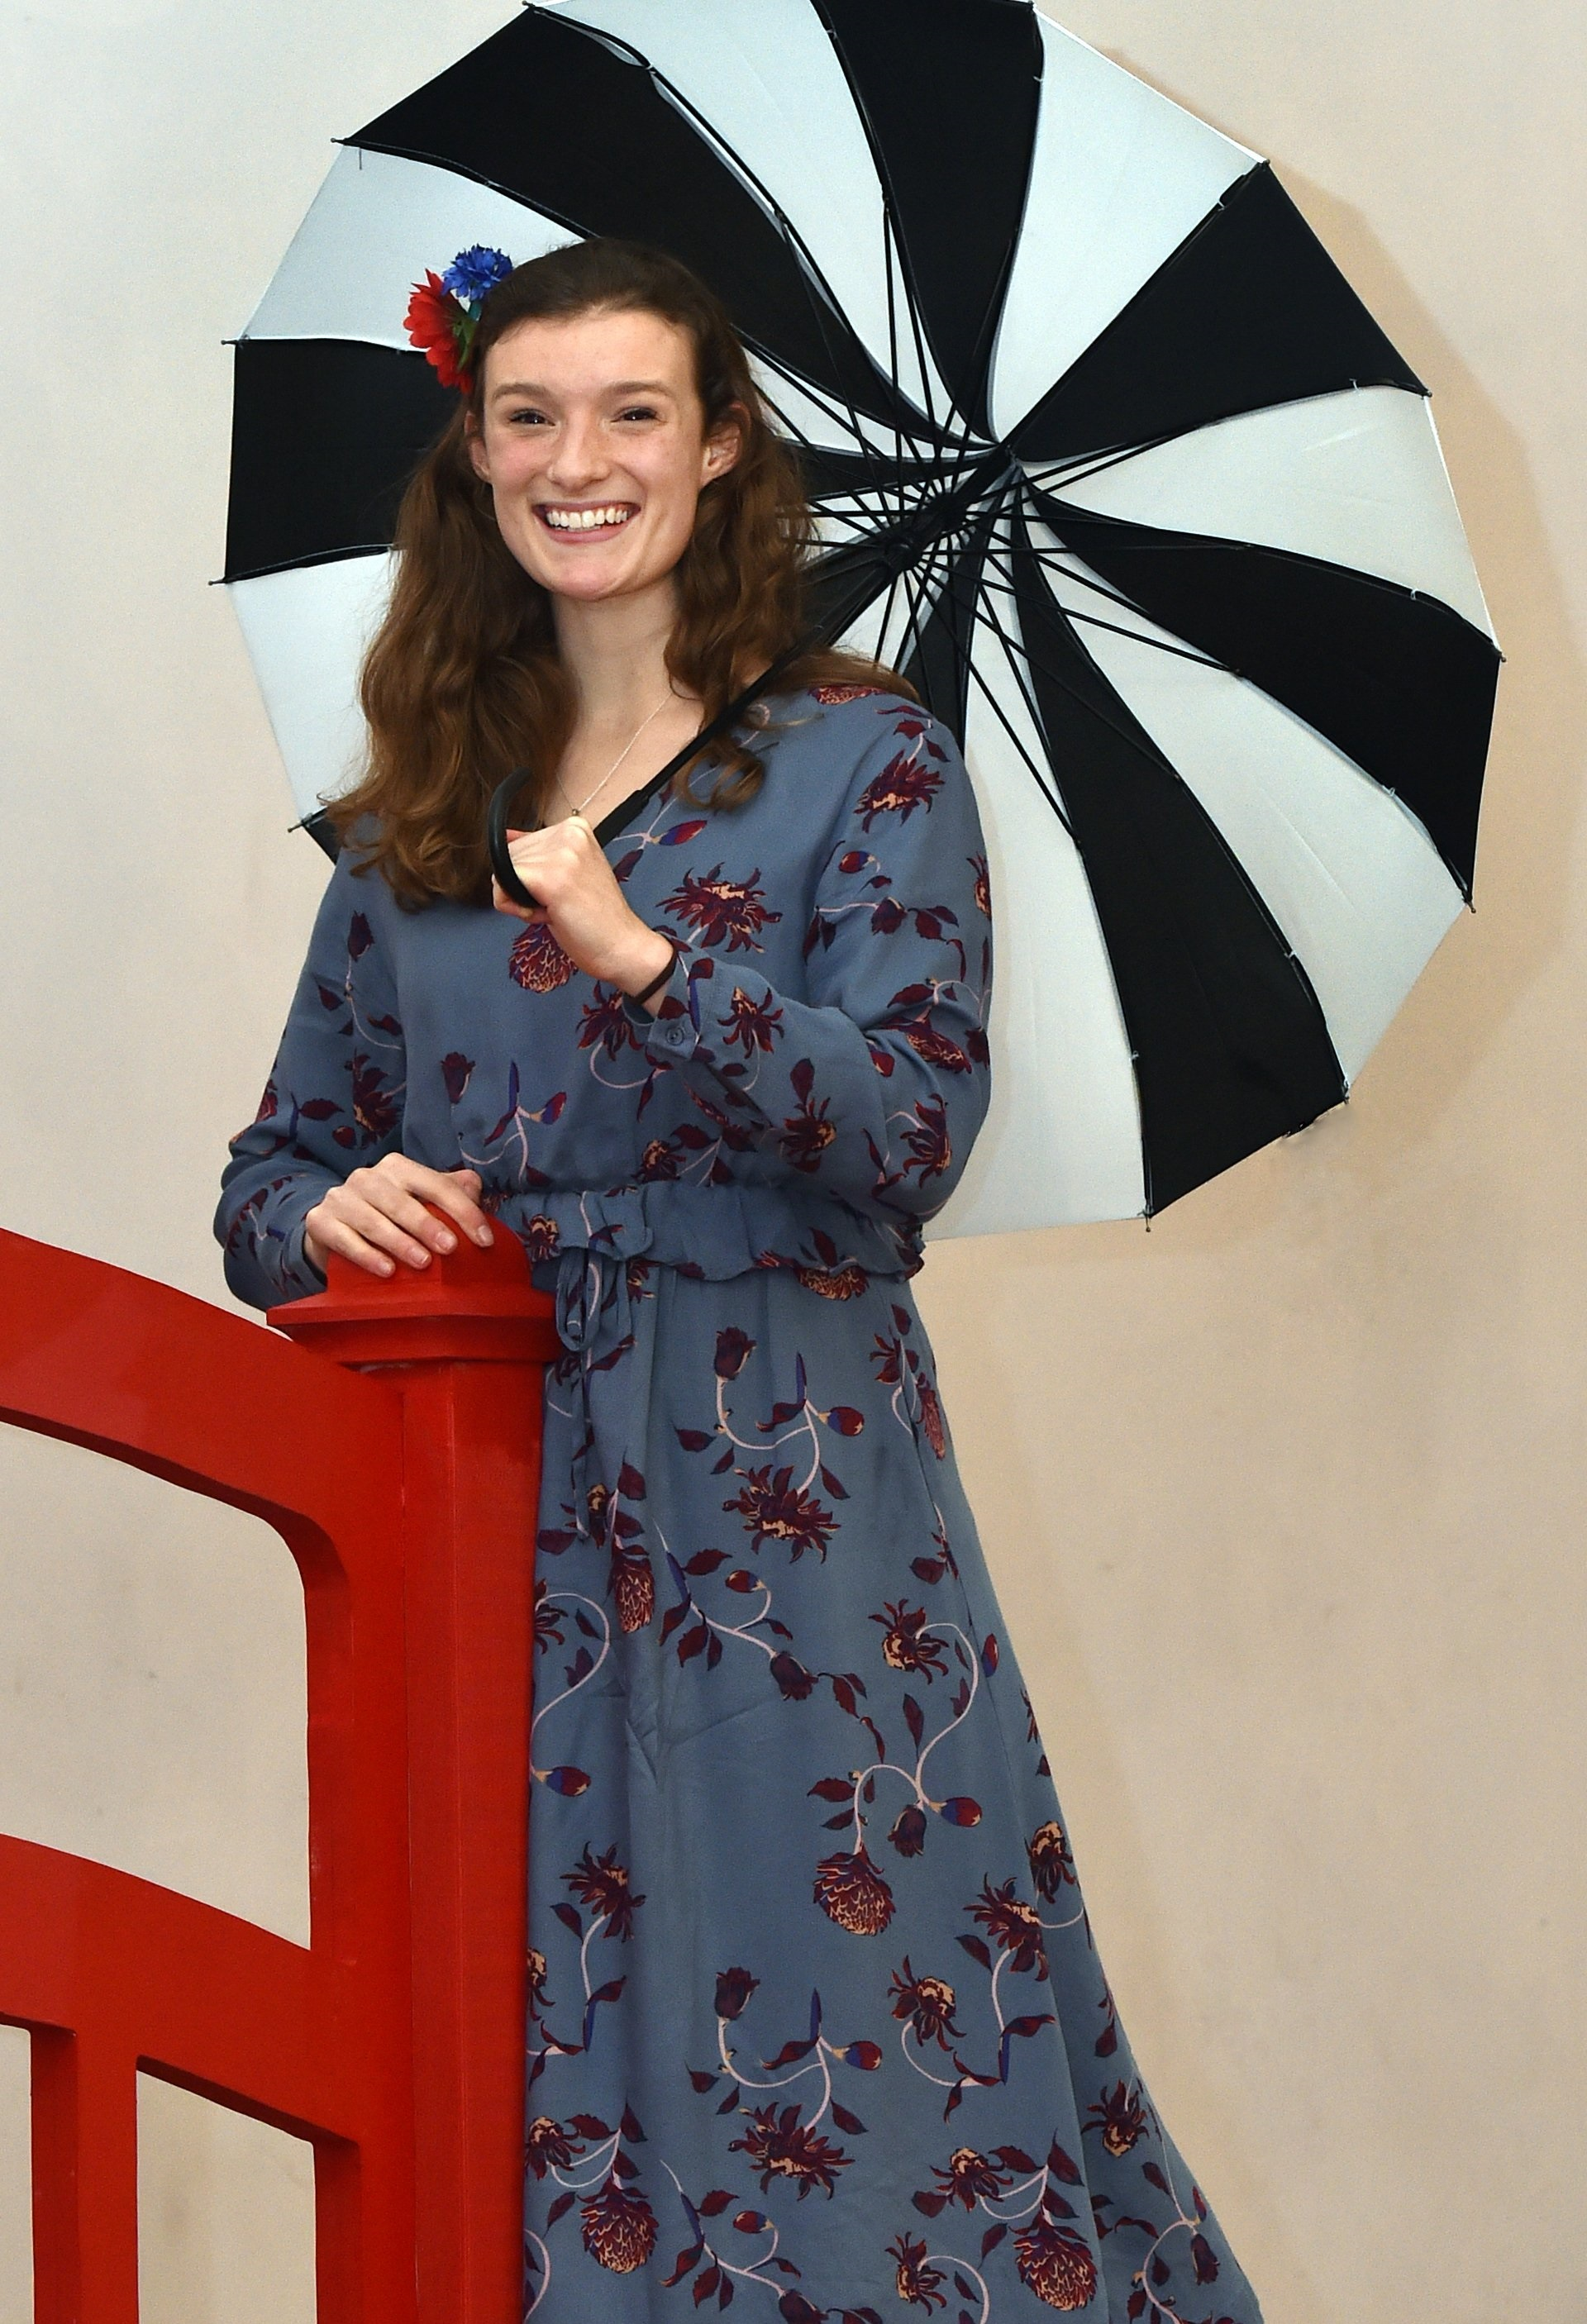 Kristina Saul  practises with her umbrella for her role in The Mikado. Photo: Peter McIntosh